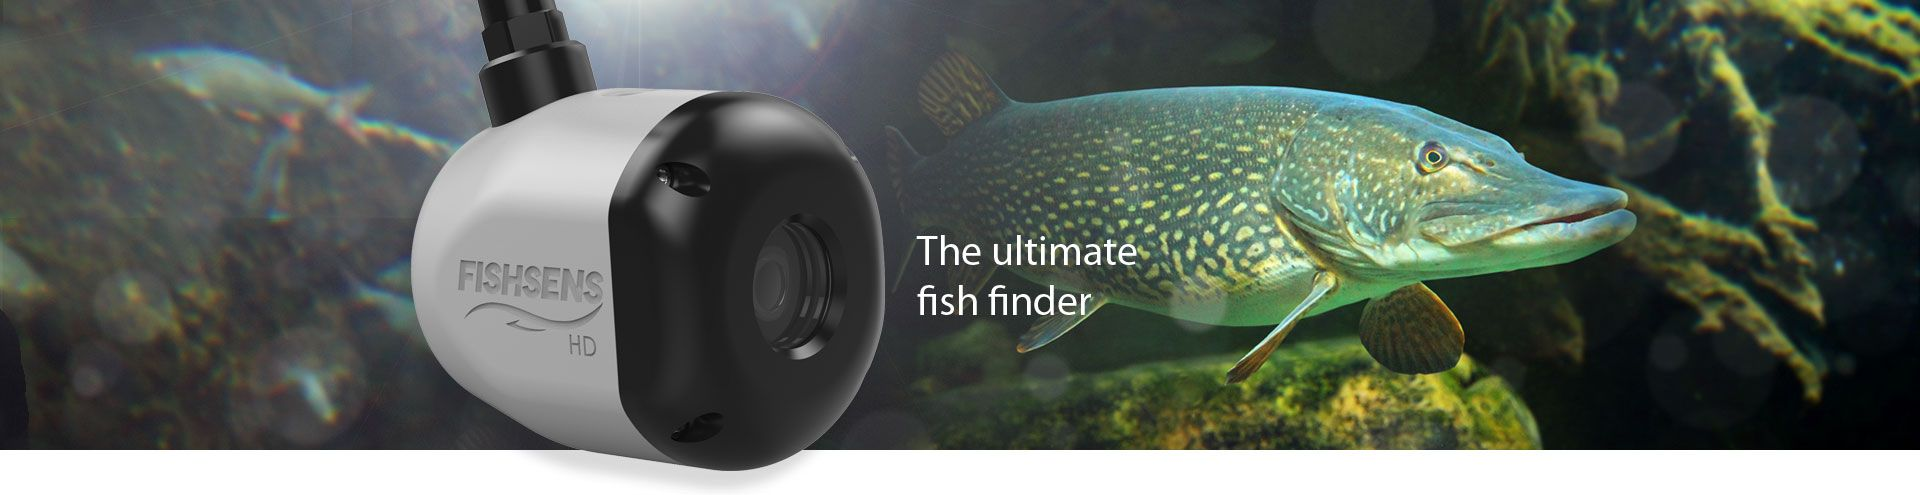 FishSens SondeCAM HD Underwater Camera